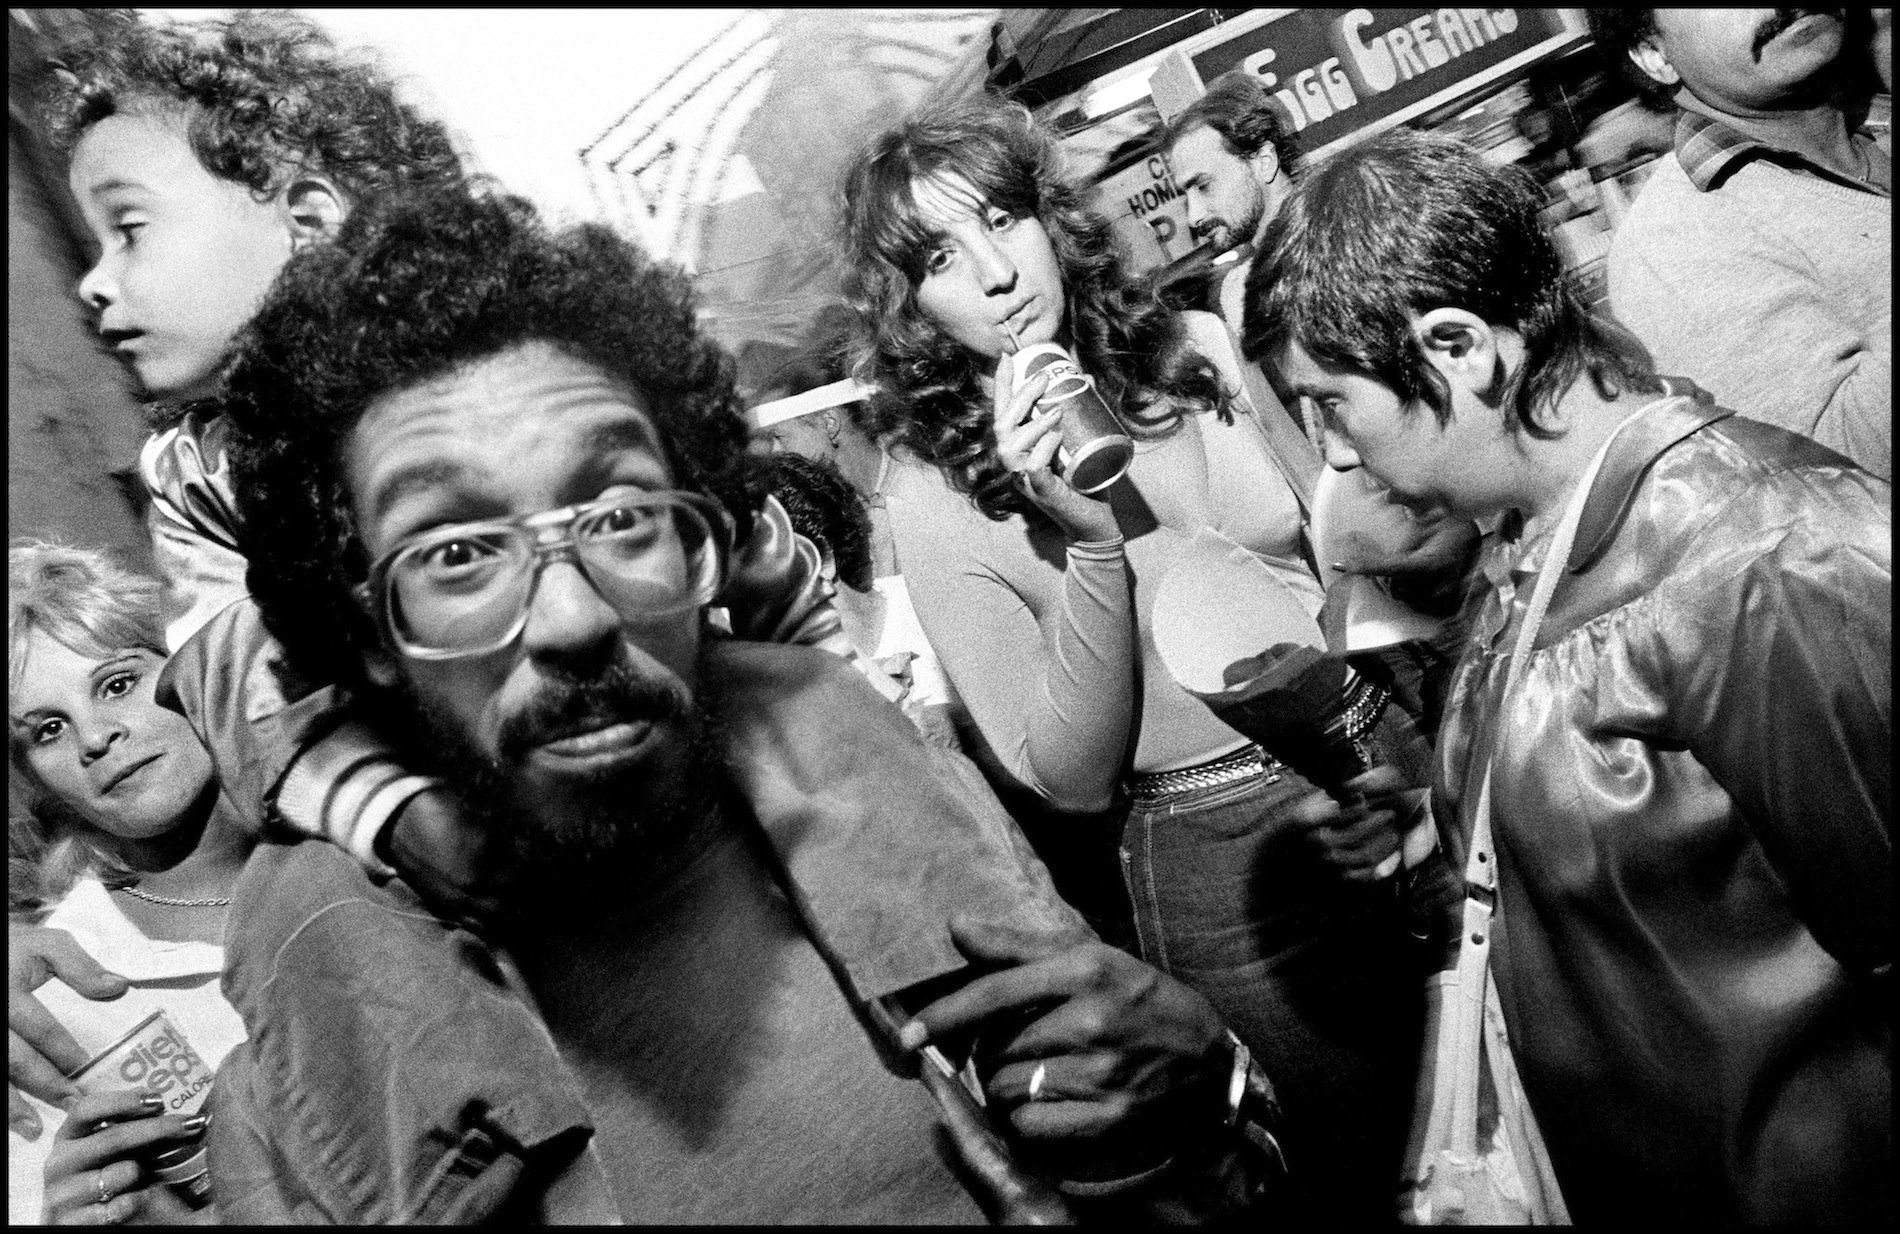 People in the street, street photography, black and white New York City, 1984 © Bruce Gilden / Magnum Photos